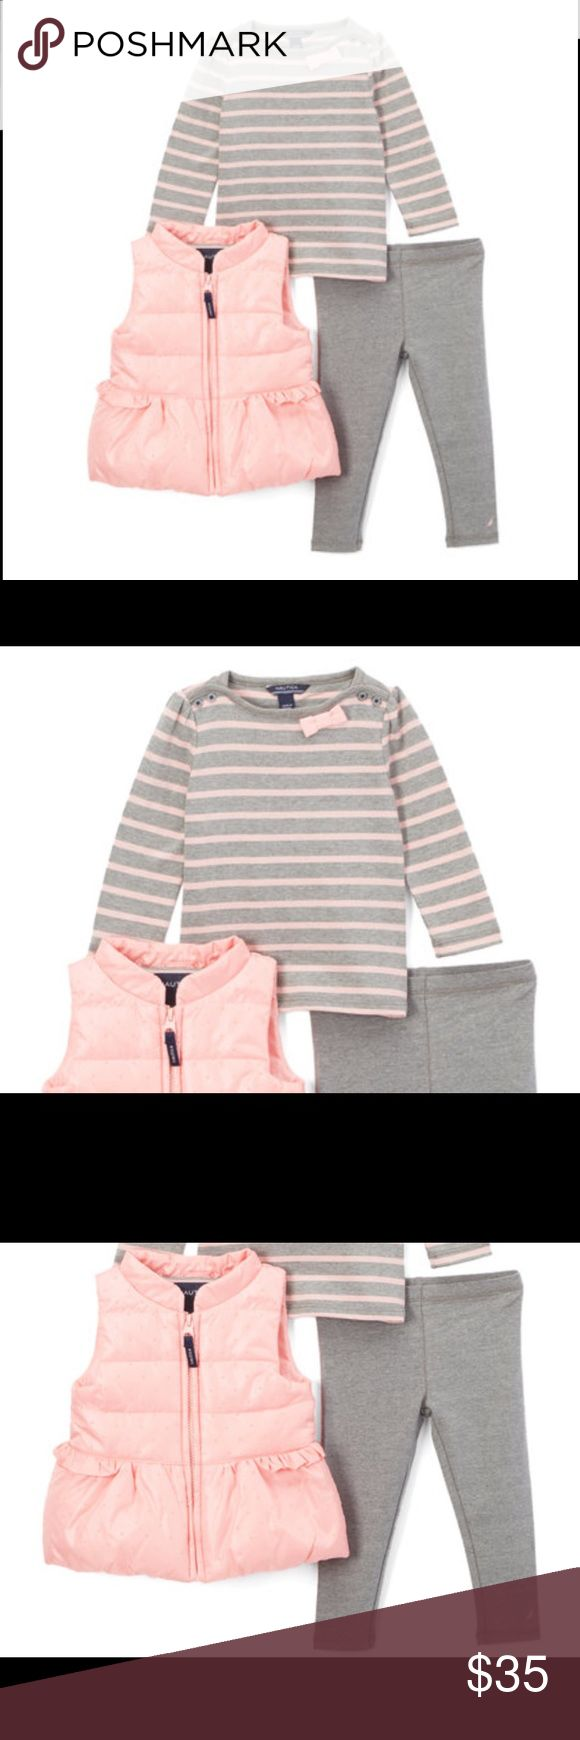 NWT Nautica 3pc Puffer Vest Top Leggings Set Pink Stripe Vest Set - Infant Girls  Nautica   This vest, long-sleeve tee and matching leggings make for a fresh layered look for your little lady's cool-weather wardrobe. Color. Pink and gray   Includes vest, tee and leggings Vest: 100% polyester Tee and leggings: 60% cotton / 40% polyester Machine wash; tumble dry Imported Retail. $69.50 Brand new with tags. Nautica Matching Sets